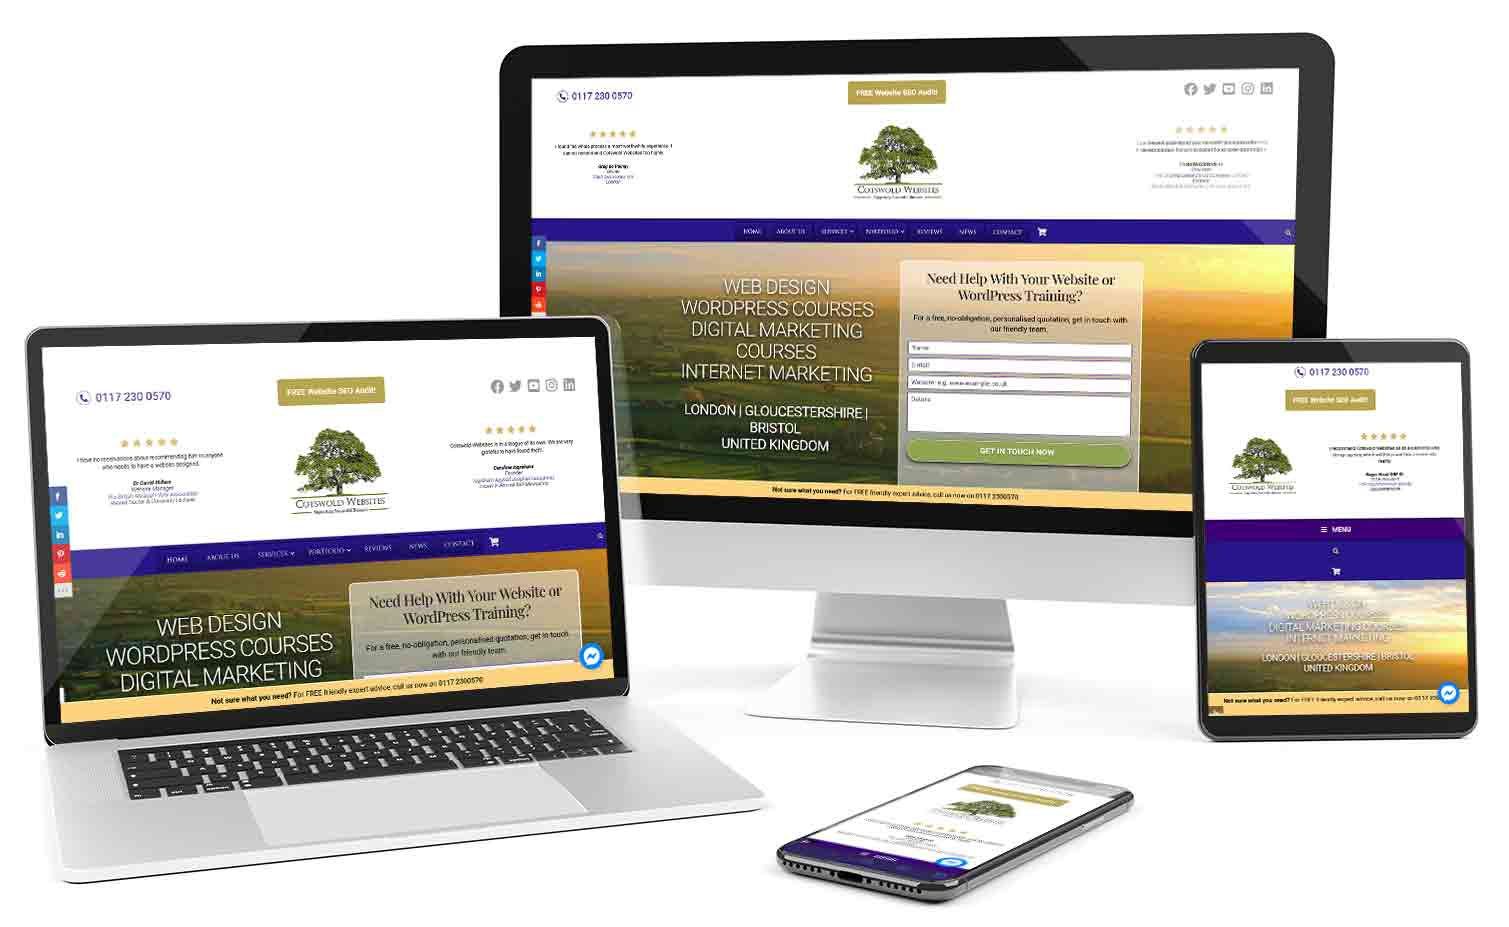 Website Design To Grow Your Business